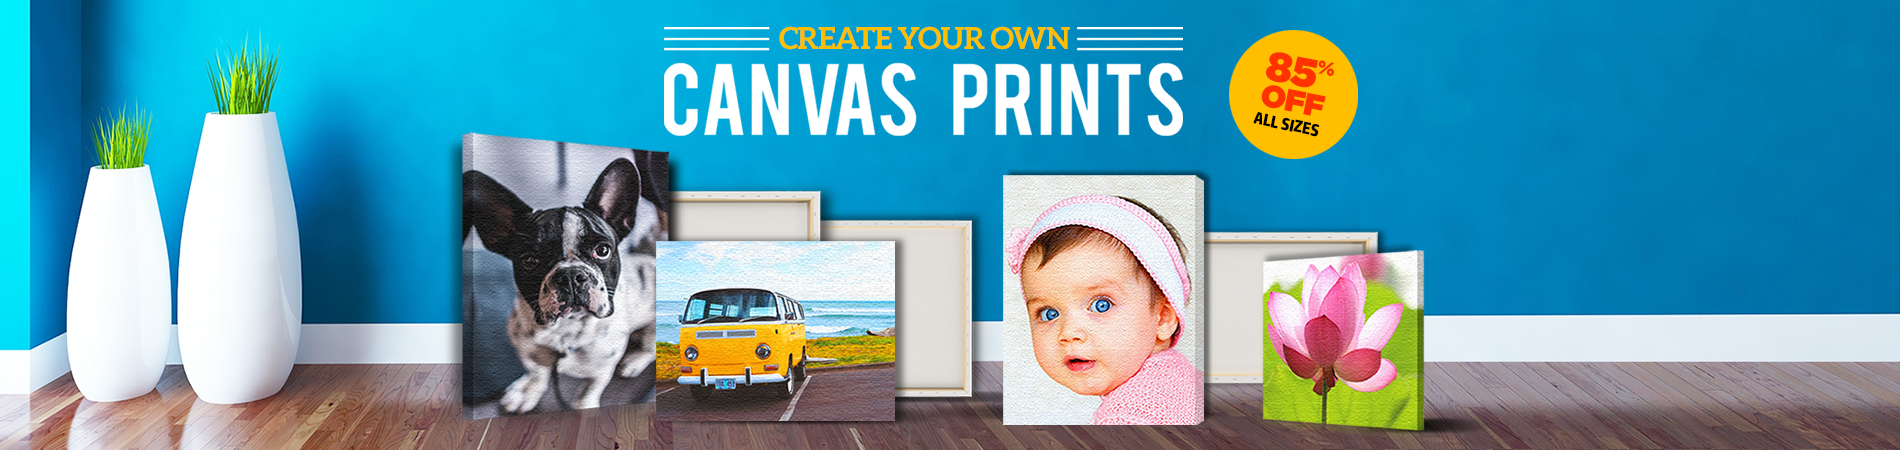 custom canvas prints, framed canvas prints, Canvas Prints, canvas photo prints